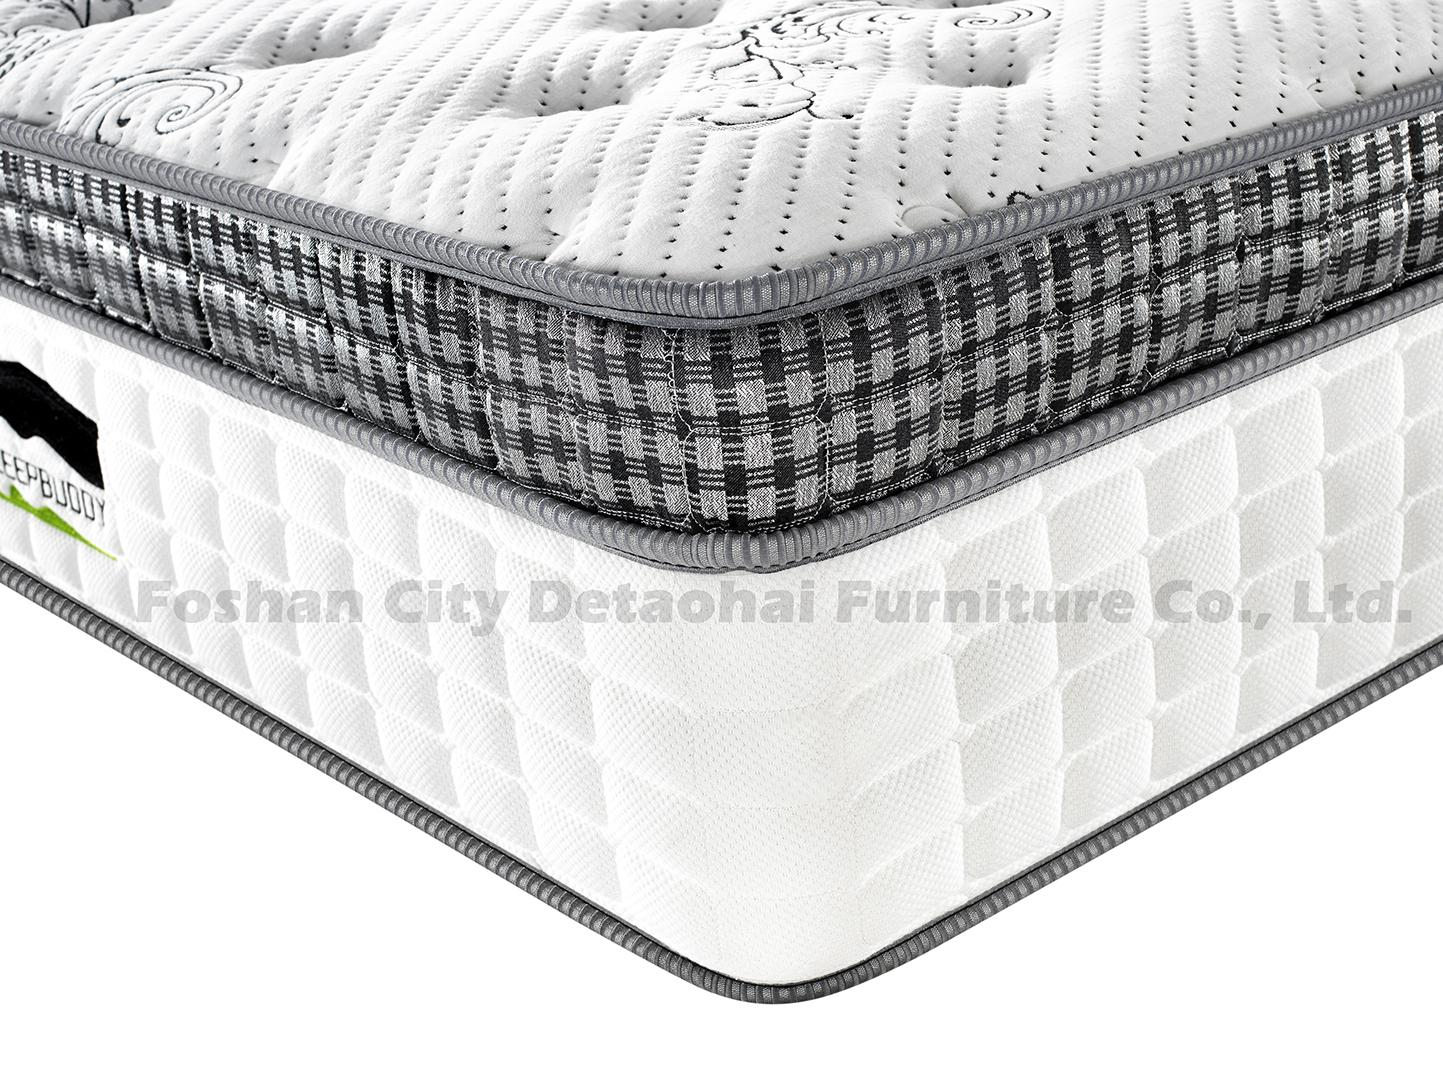 comfortable high-quality bedroom mattress with double pocket spring unit 3